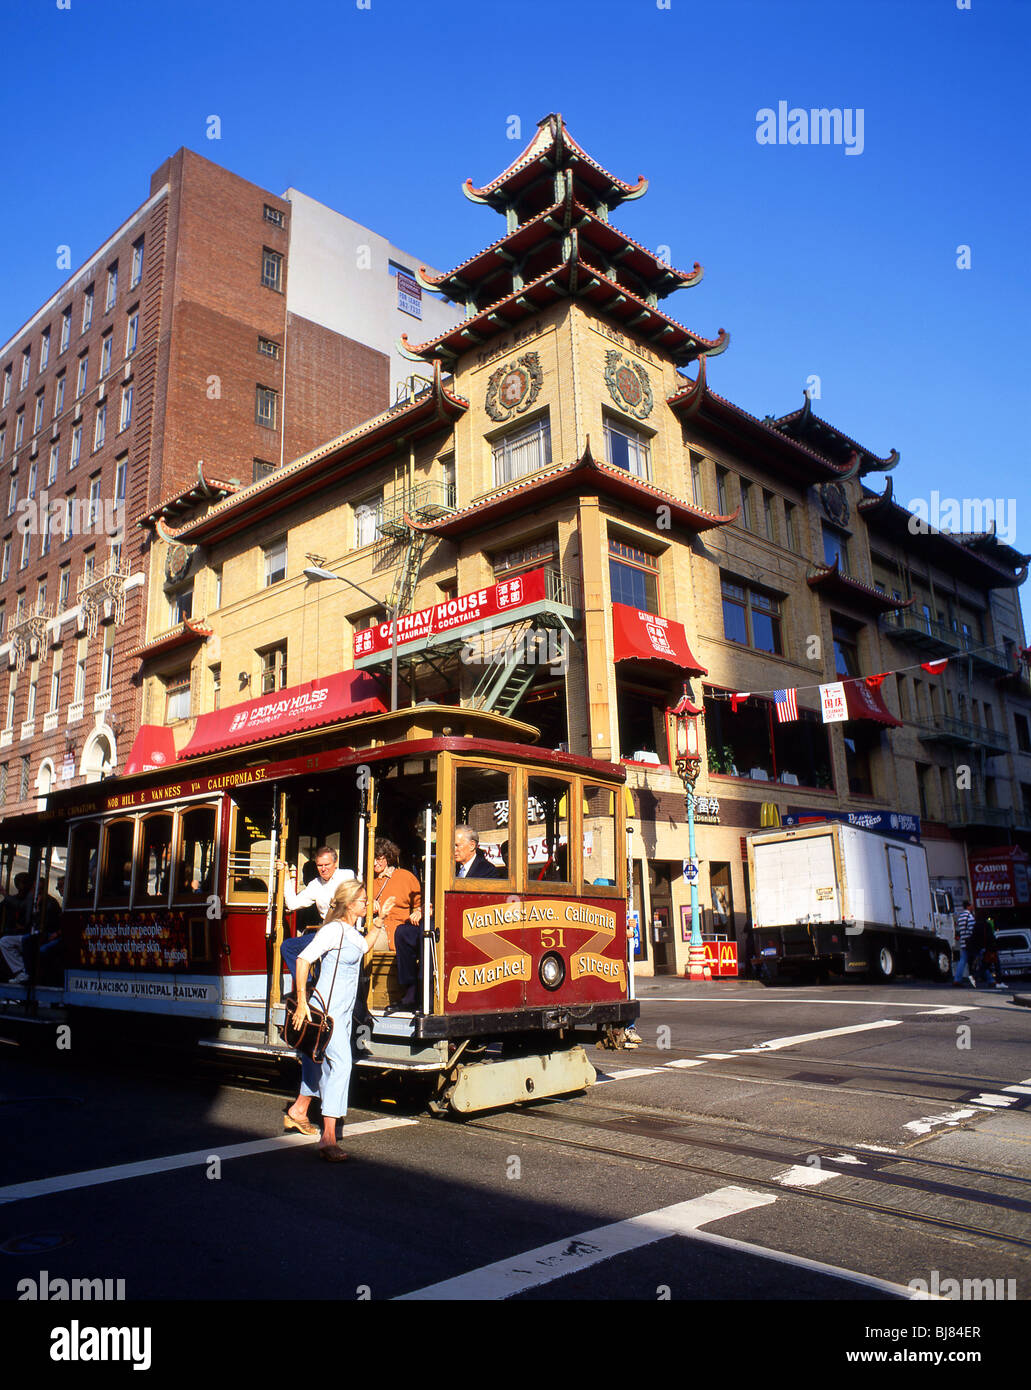 Cable car on street, Chinatown, San Francisco, California, United ...